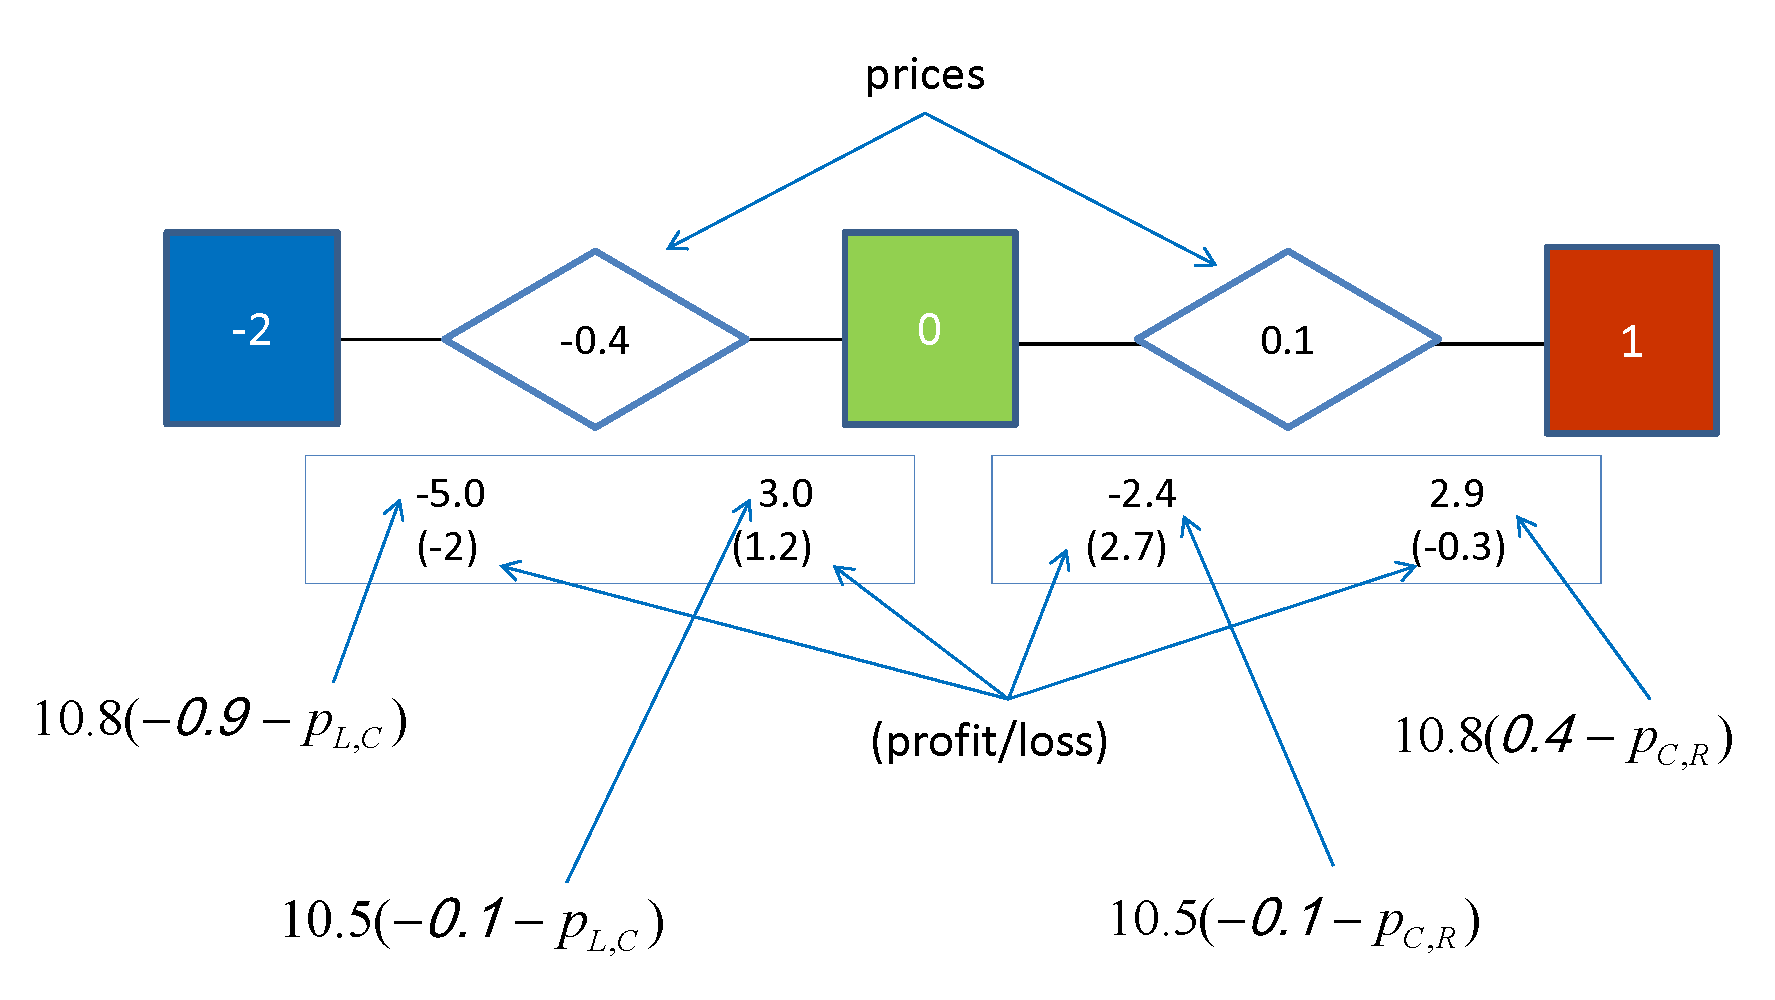 Figure 3: The connected squares depict three dealers organized in a 3 star network. Their realized signals are in the middle of the square.